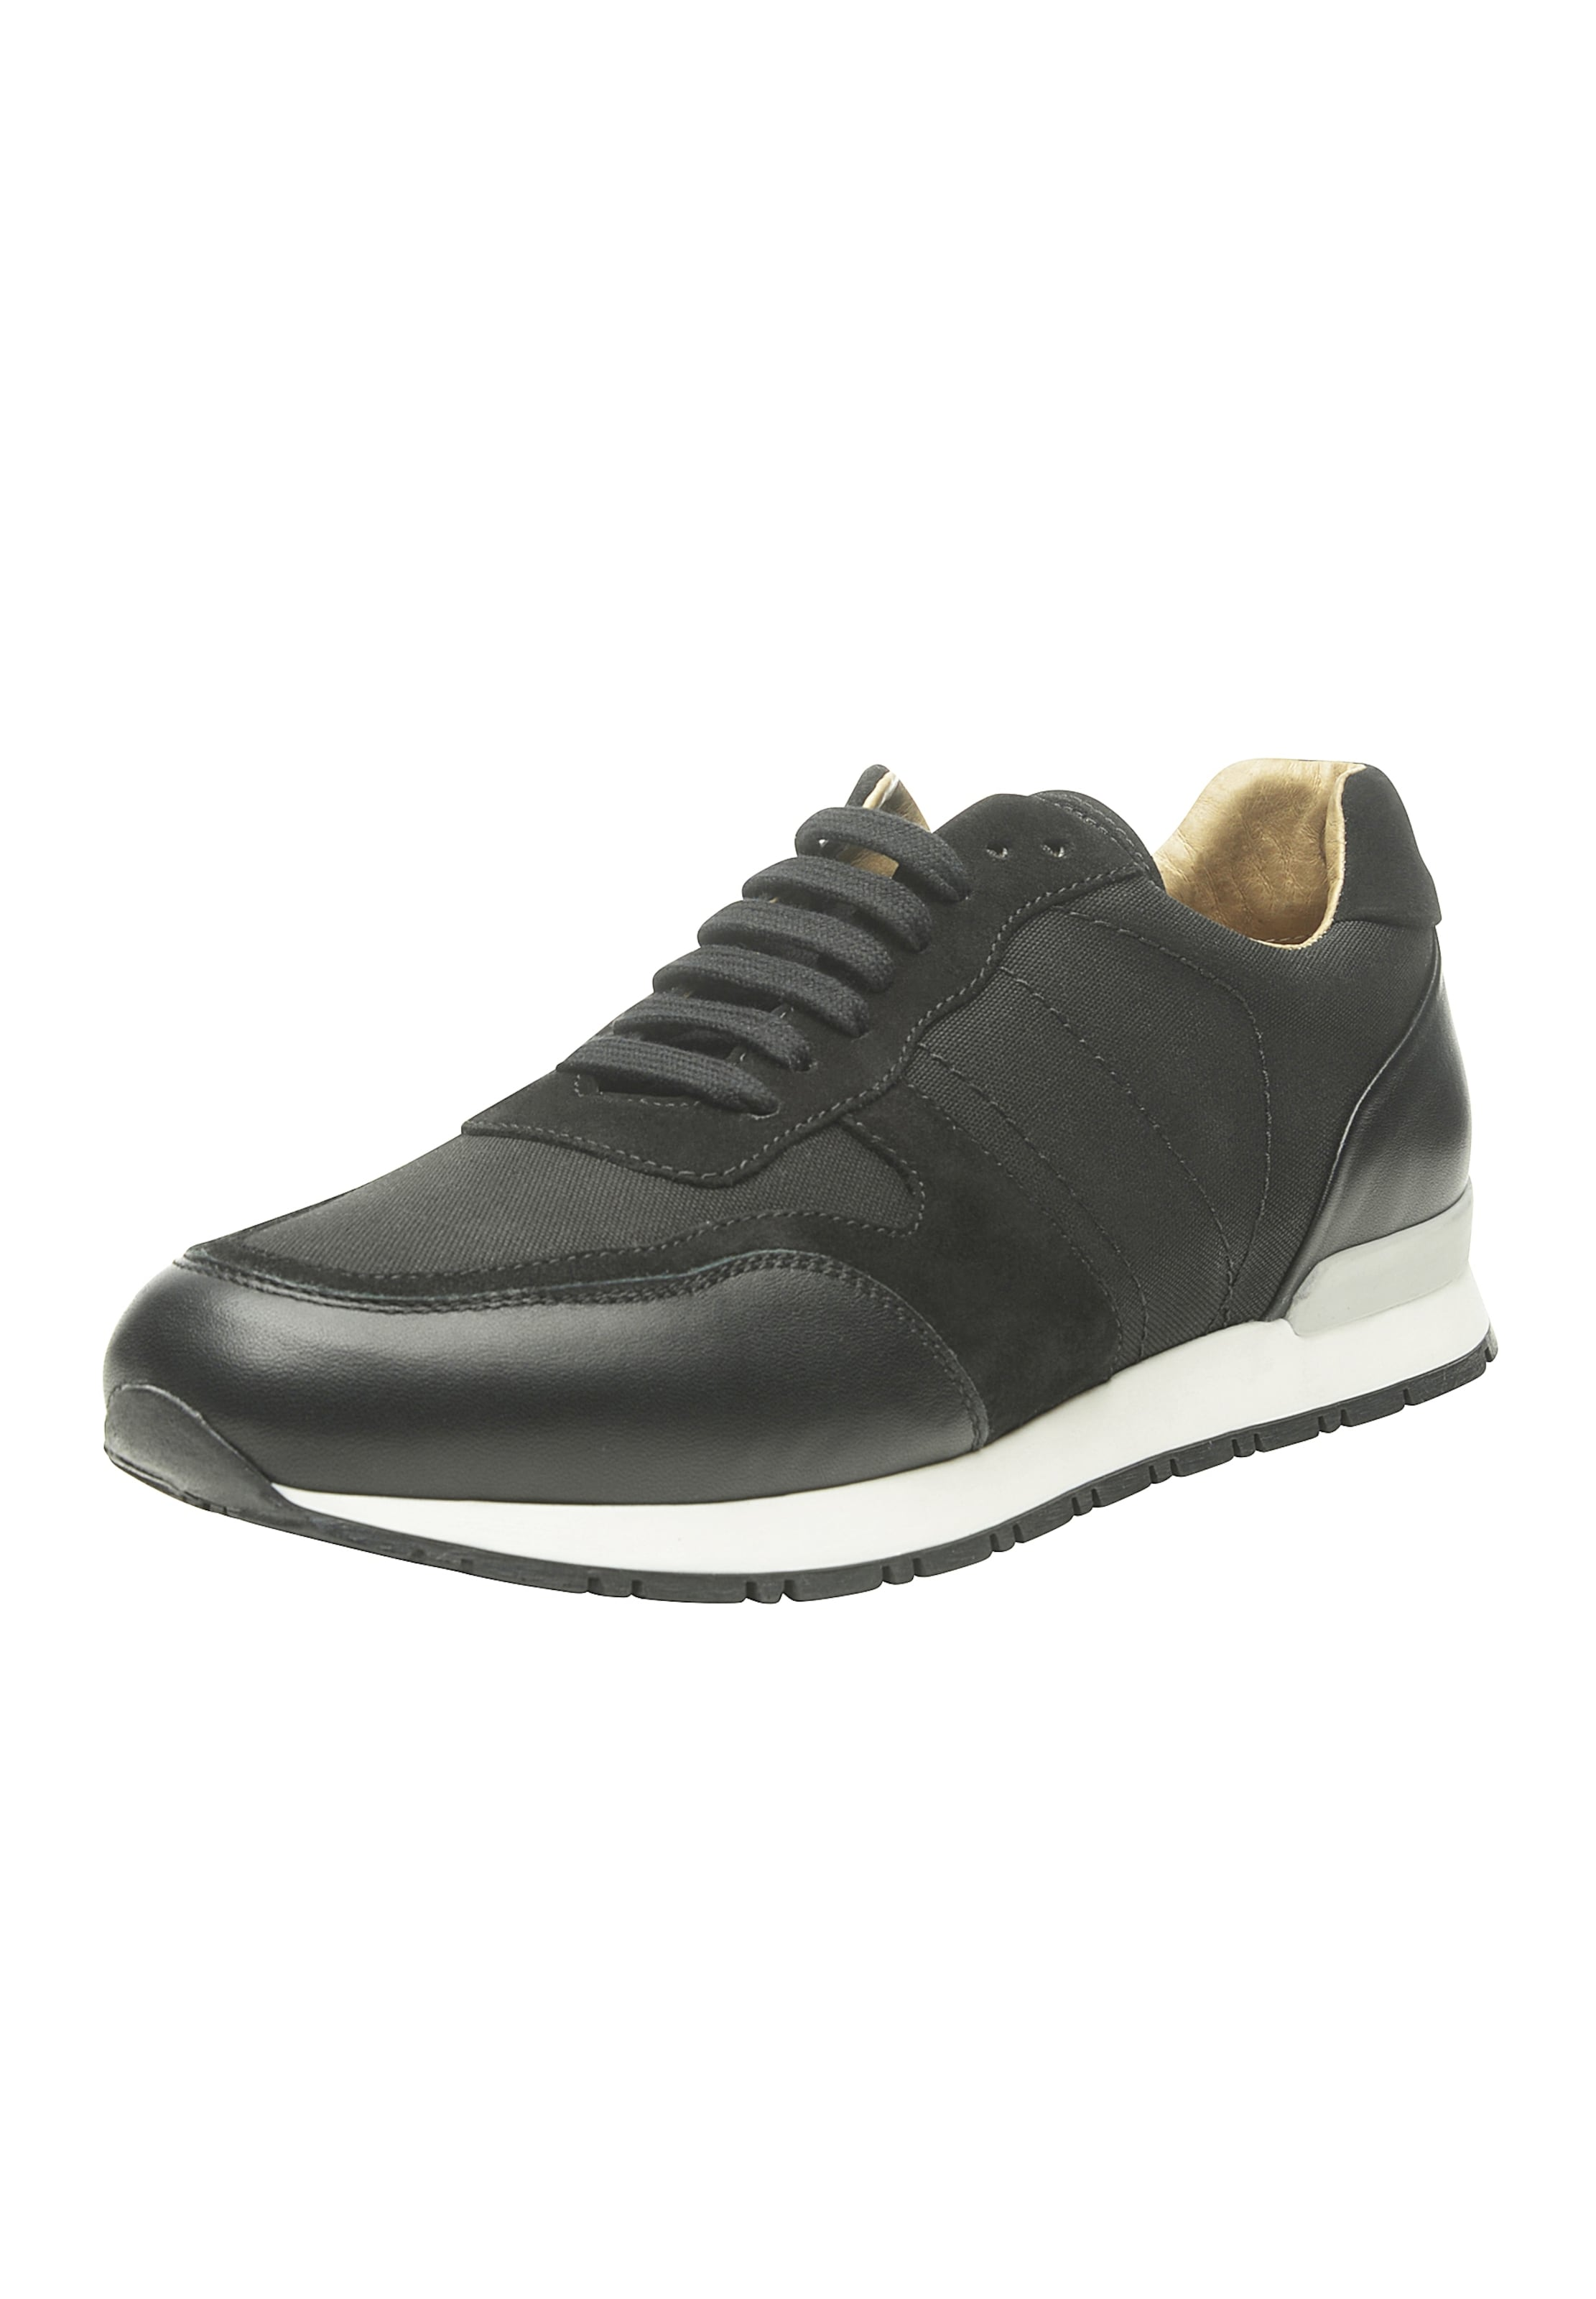 SHOEPASSION | Turnschuhe No. 10 MS